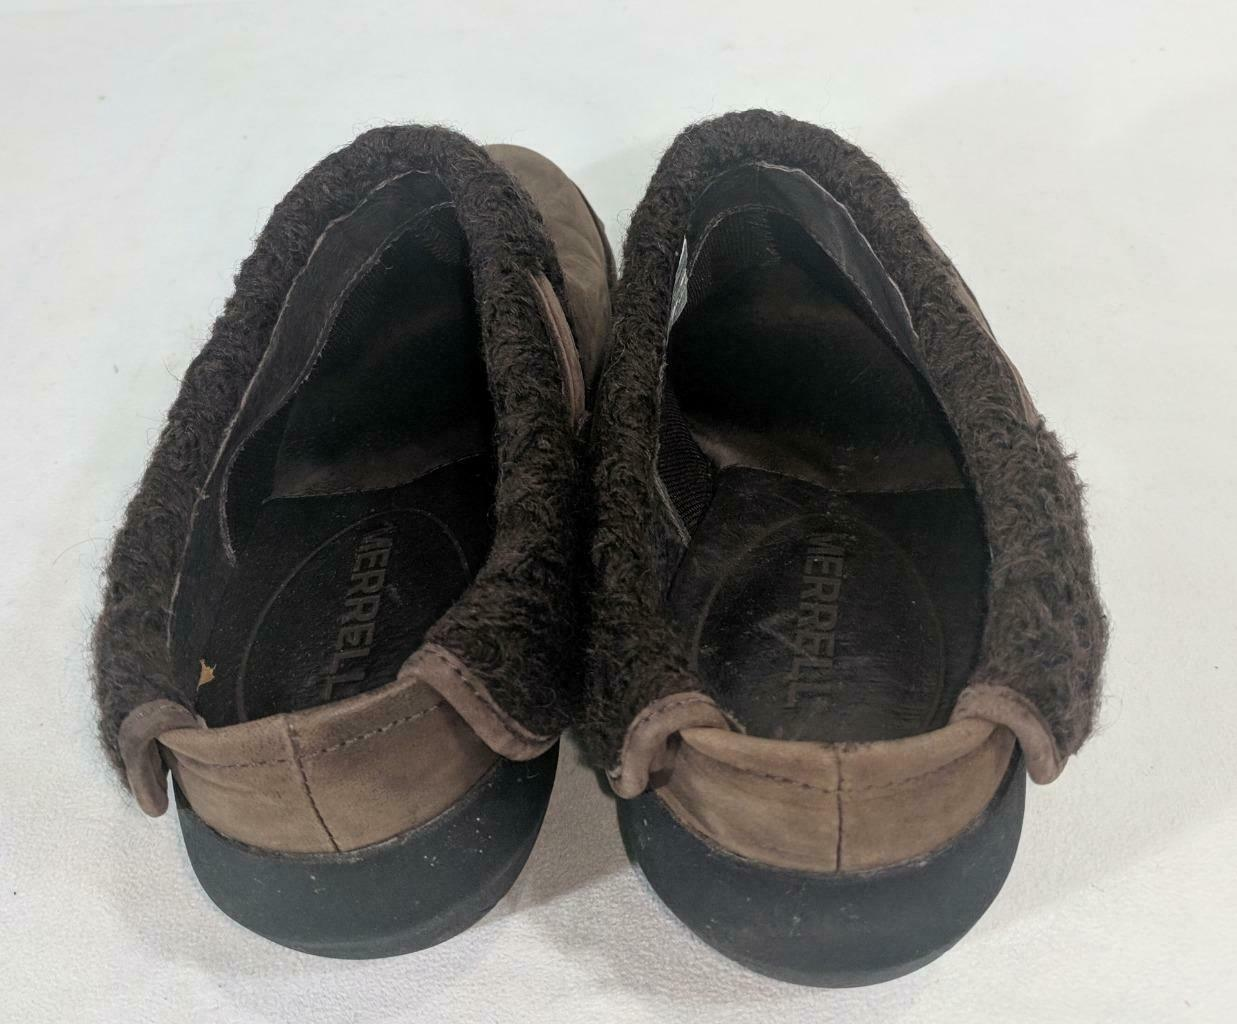 LM Women's 9 Merrell Luxe Knit Brown Studded Nubuck Slip-On Clog Mule Shoes EUC